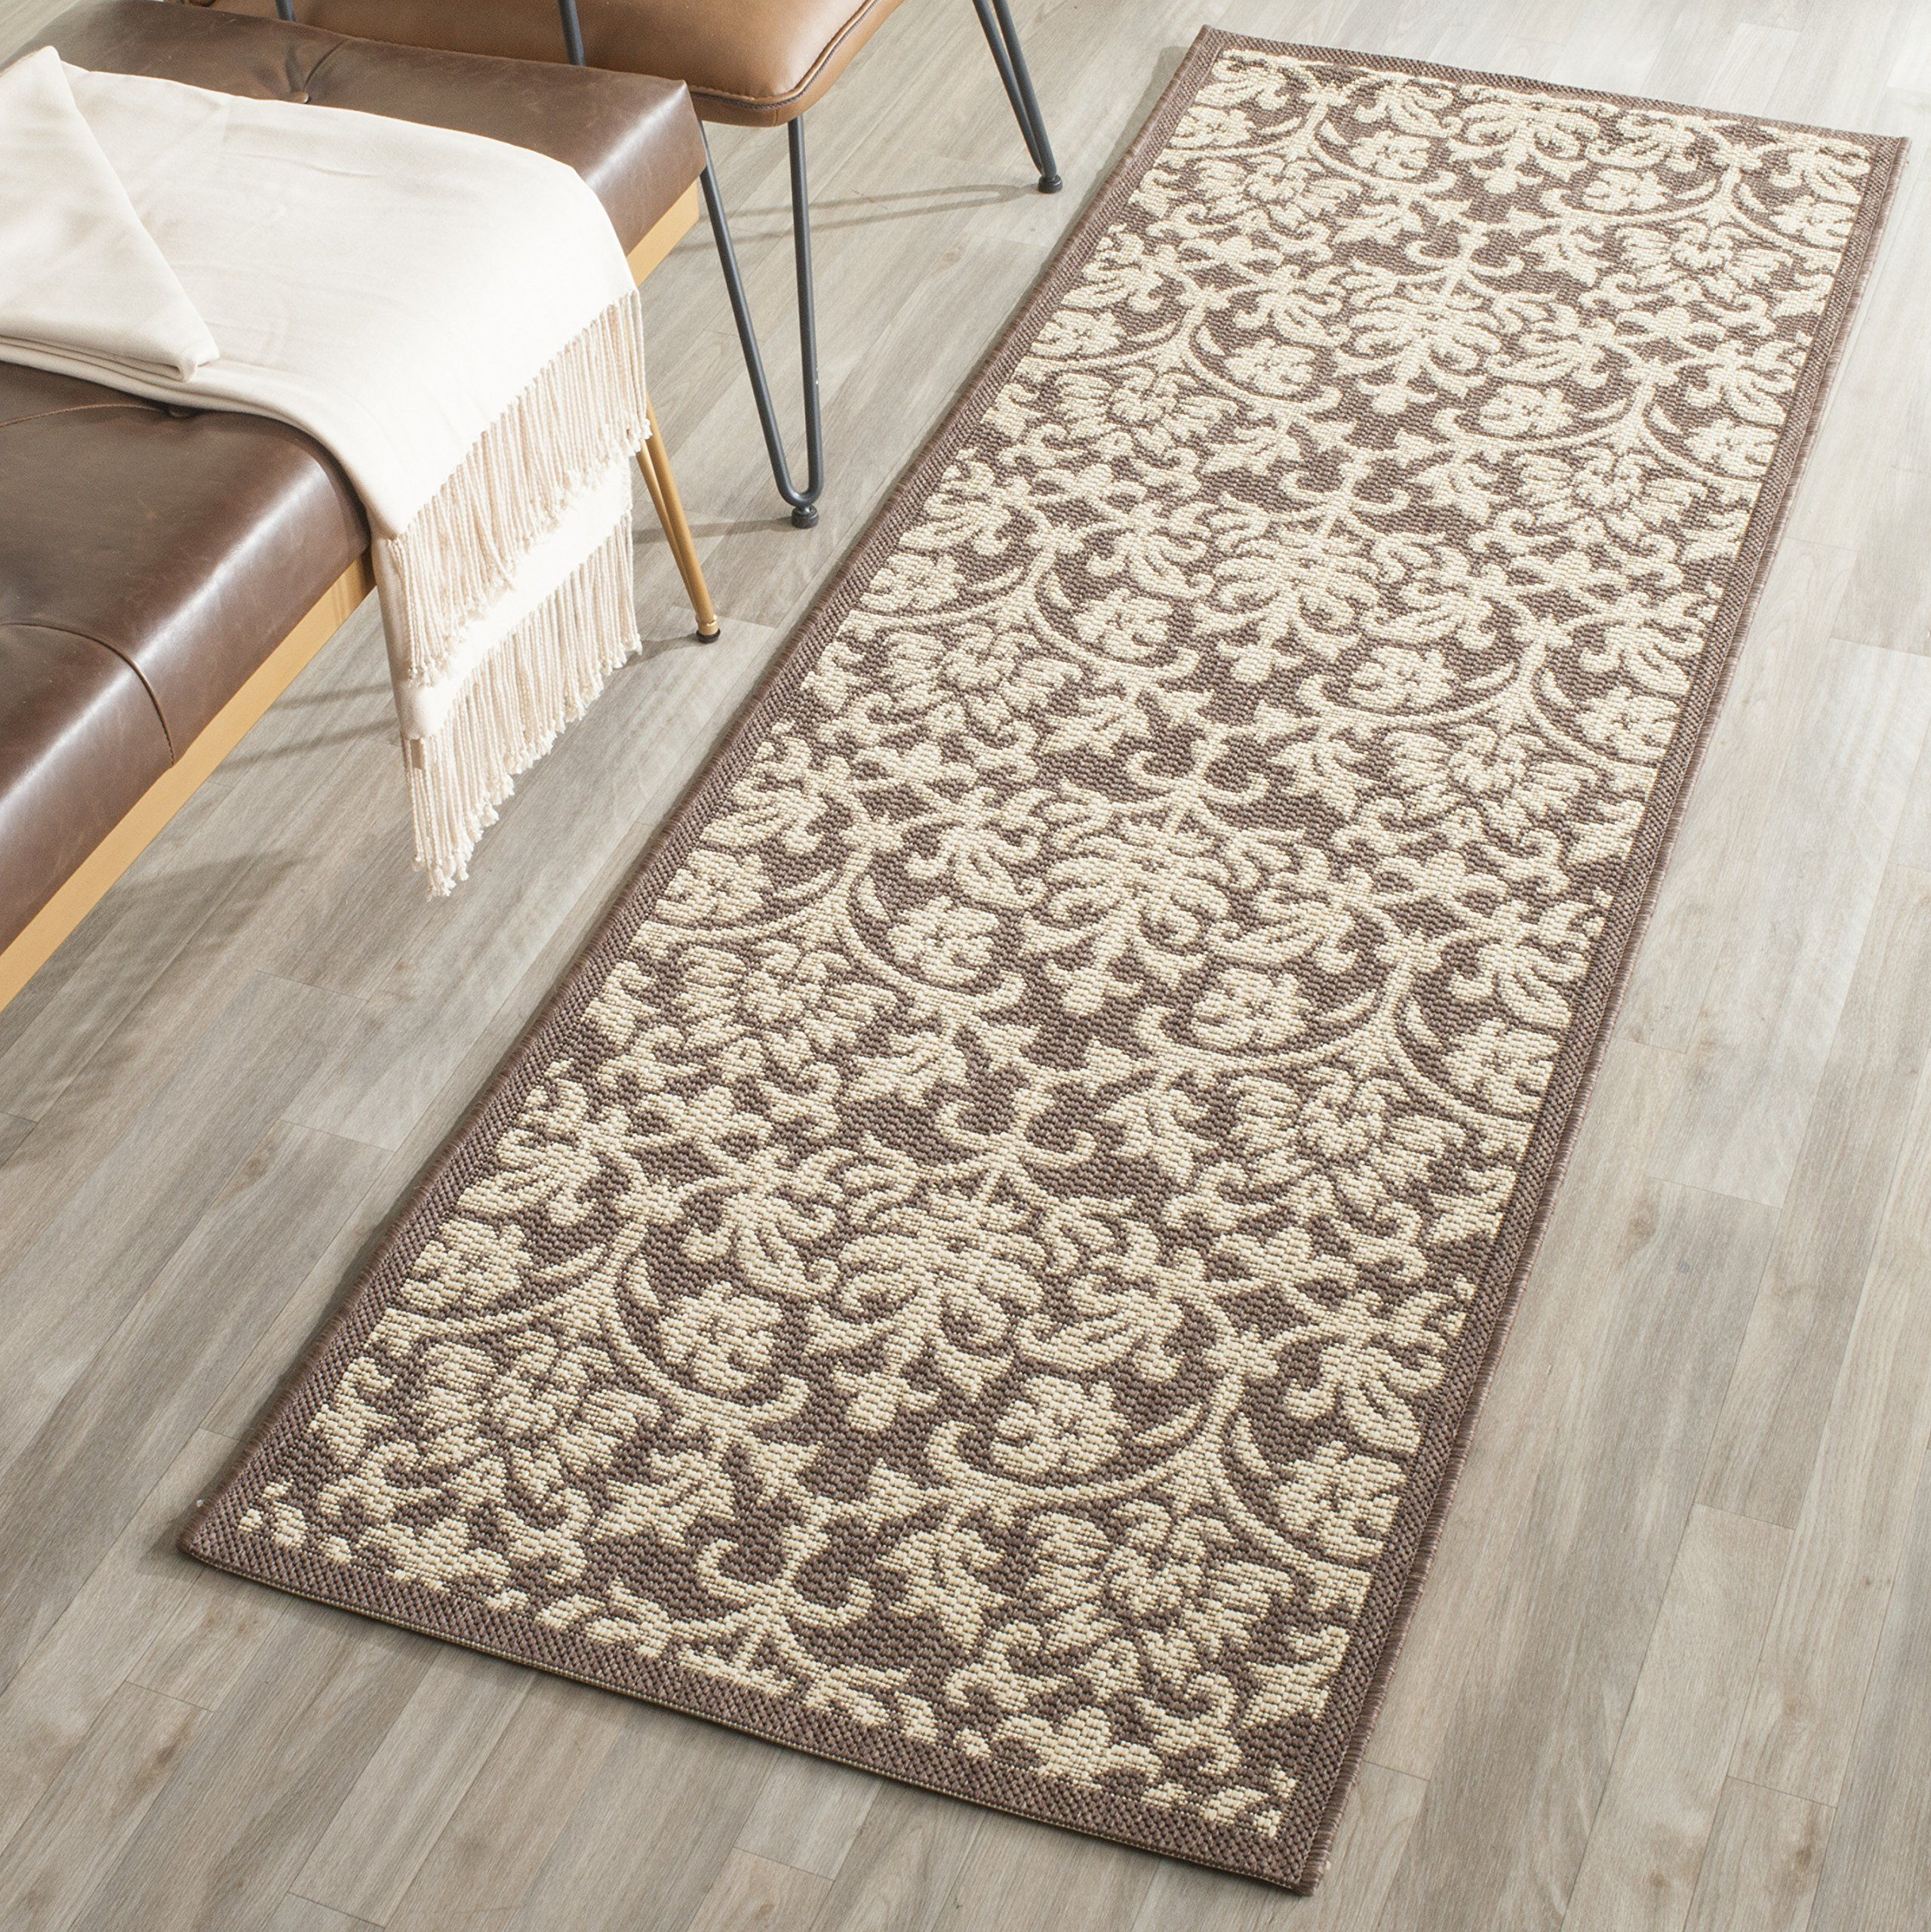 Safavieh Courtyard Collection Cy34163409 Chocolate And Natural Indoor Outdoor Runner 23 X 12 You Ca Indoor Outdoor Area Rugs Indoor Outdoor Rugs Outdoor Rugs